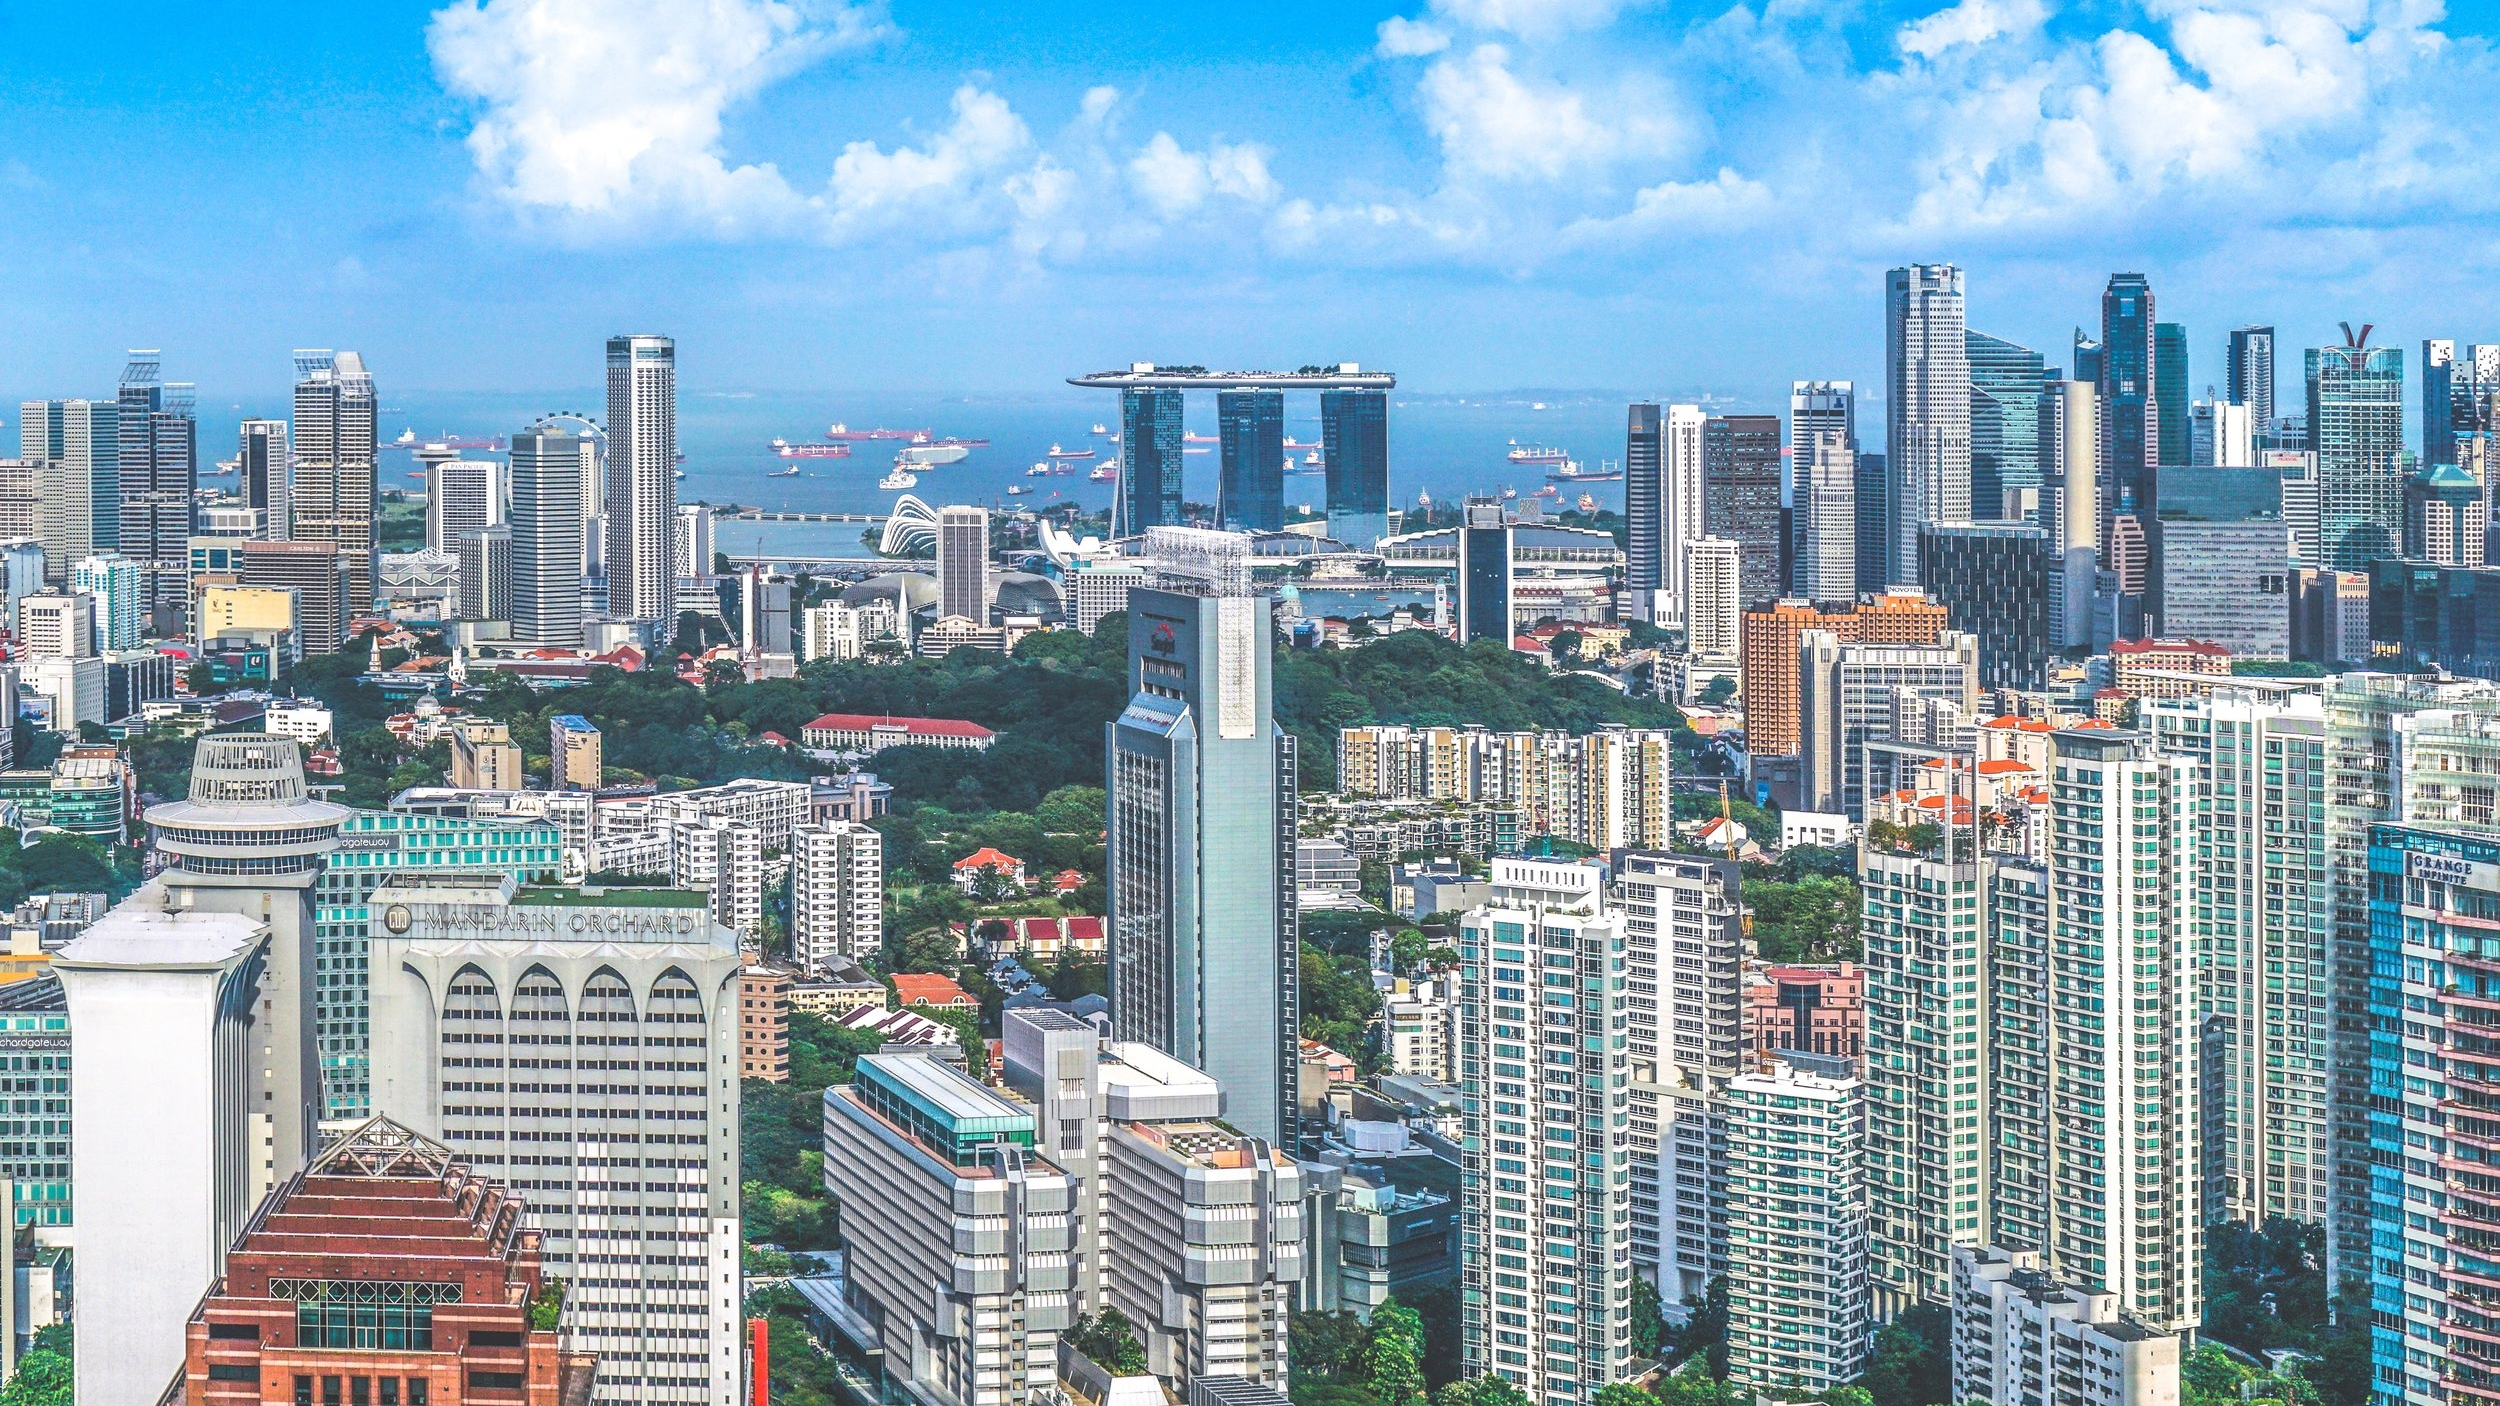 Paving the way for sustainable building design in Singapore - CLIENT: SINGAPORE GREEN BUILDING COUNCIL